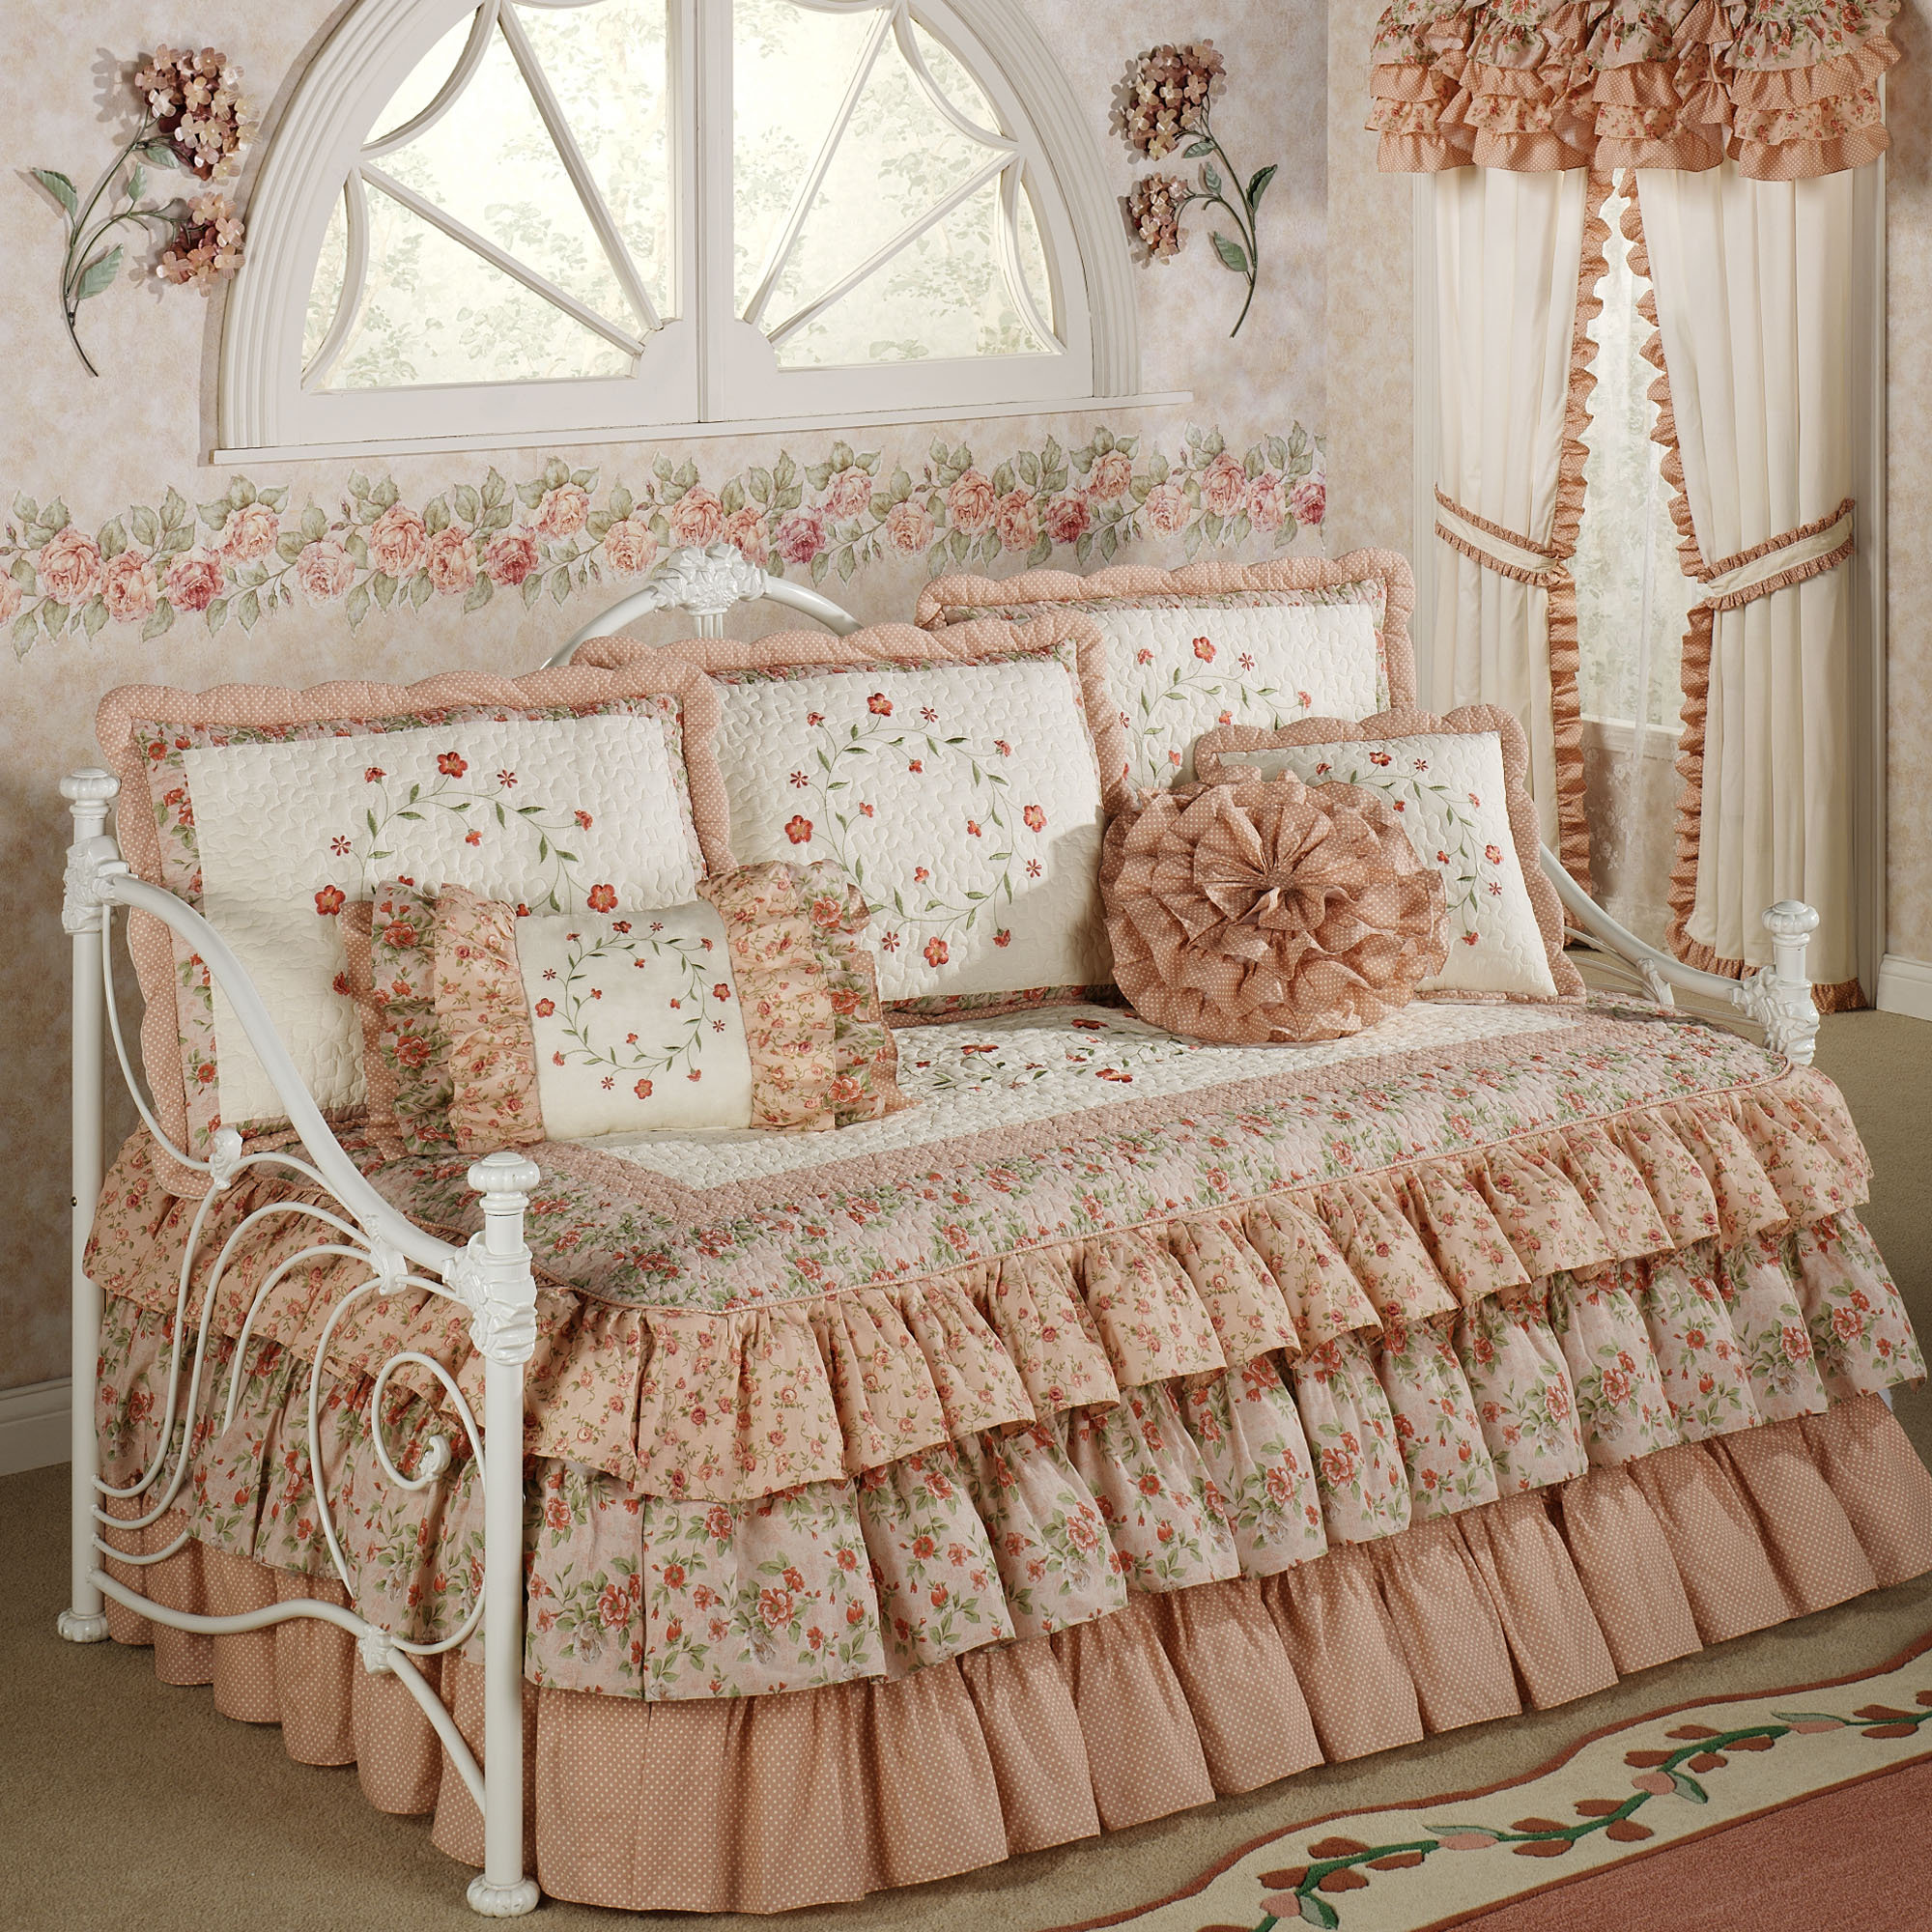 country daybed bedding sets photo - 6